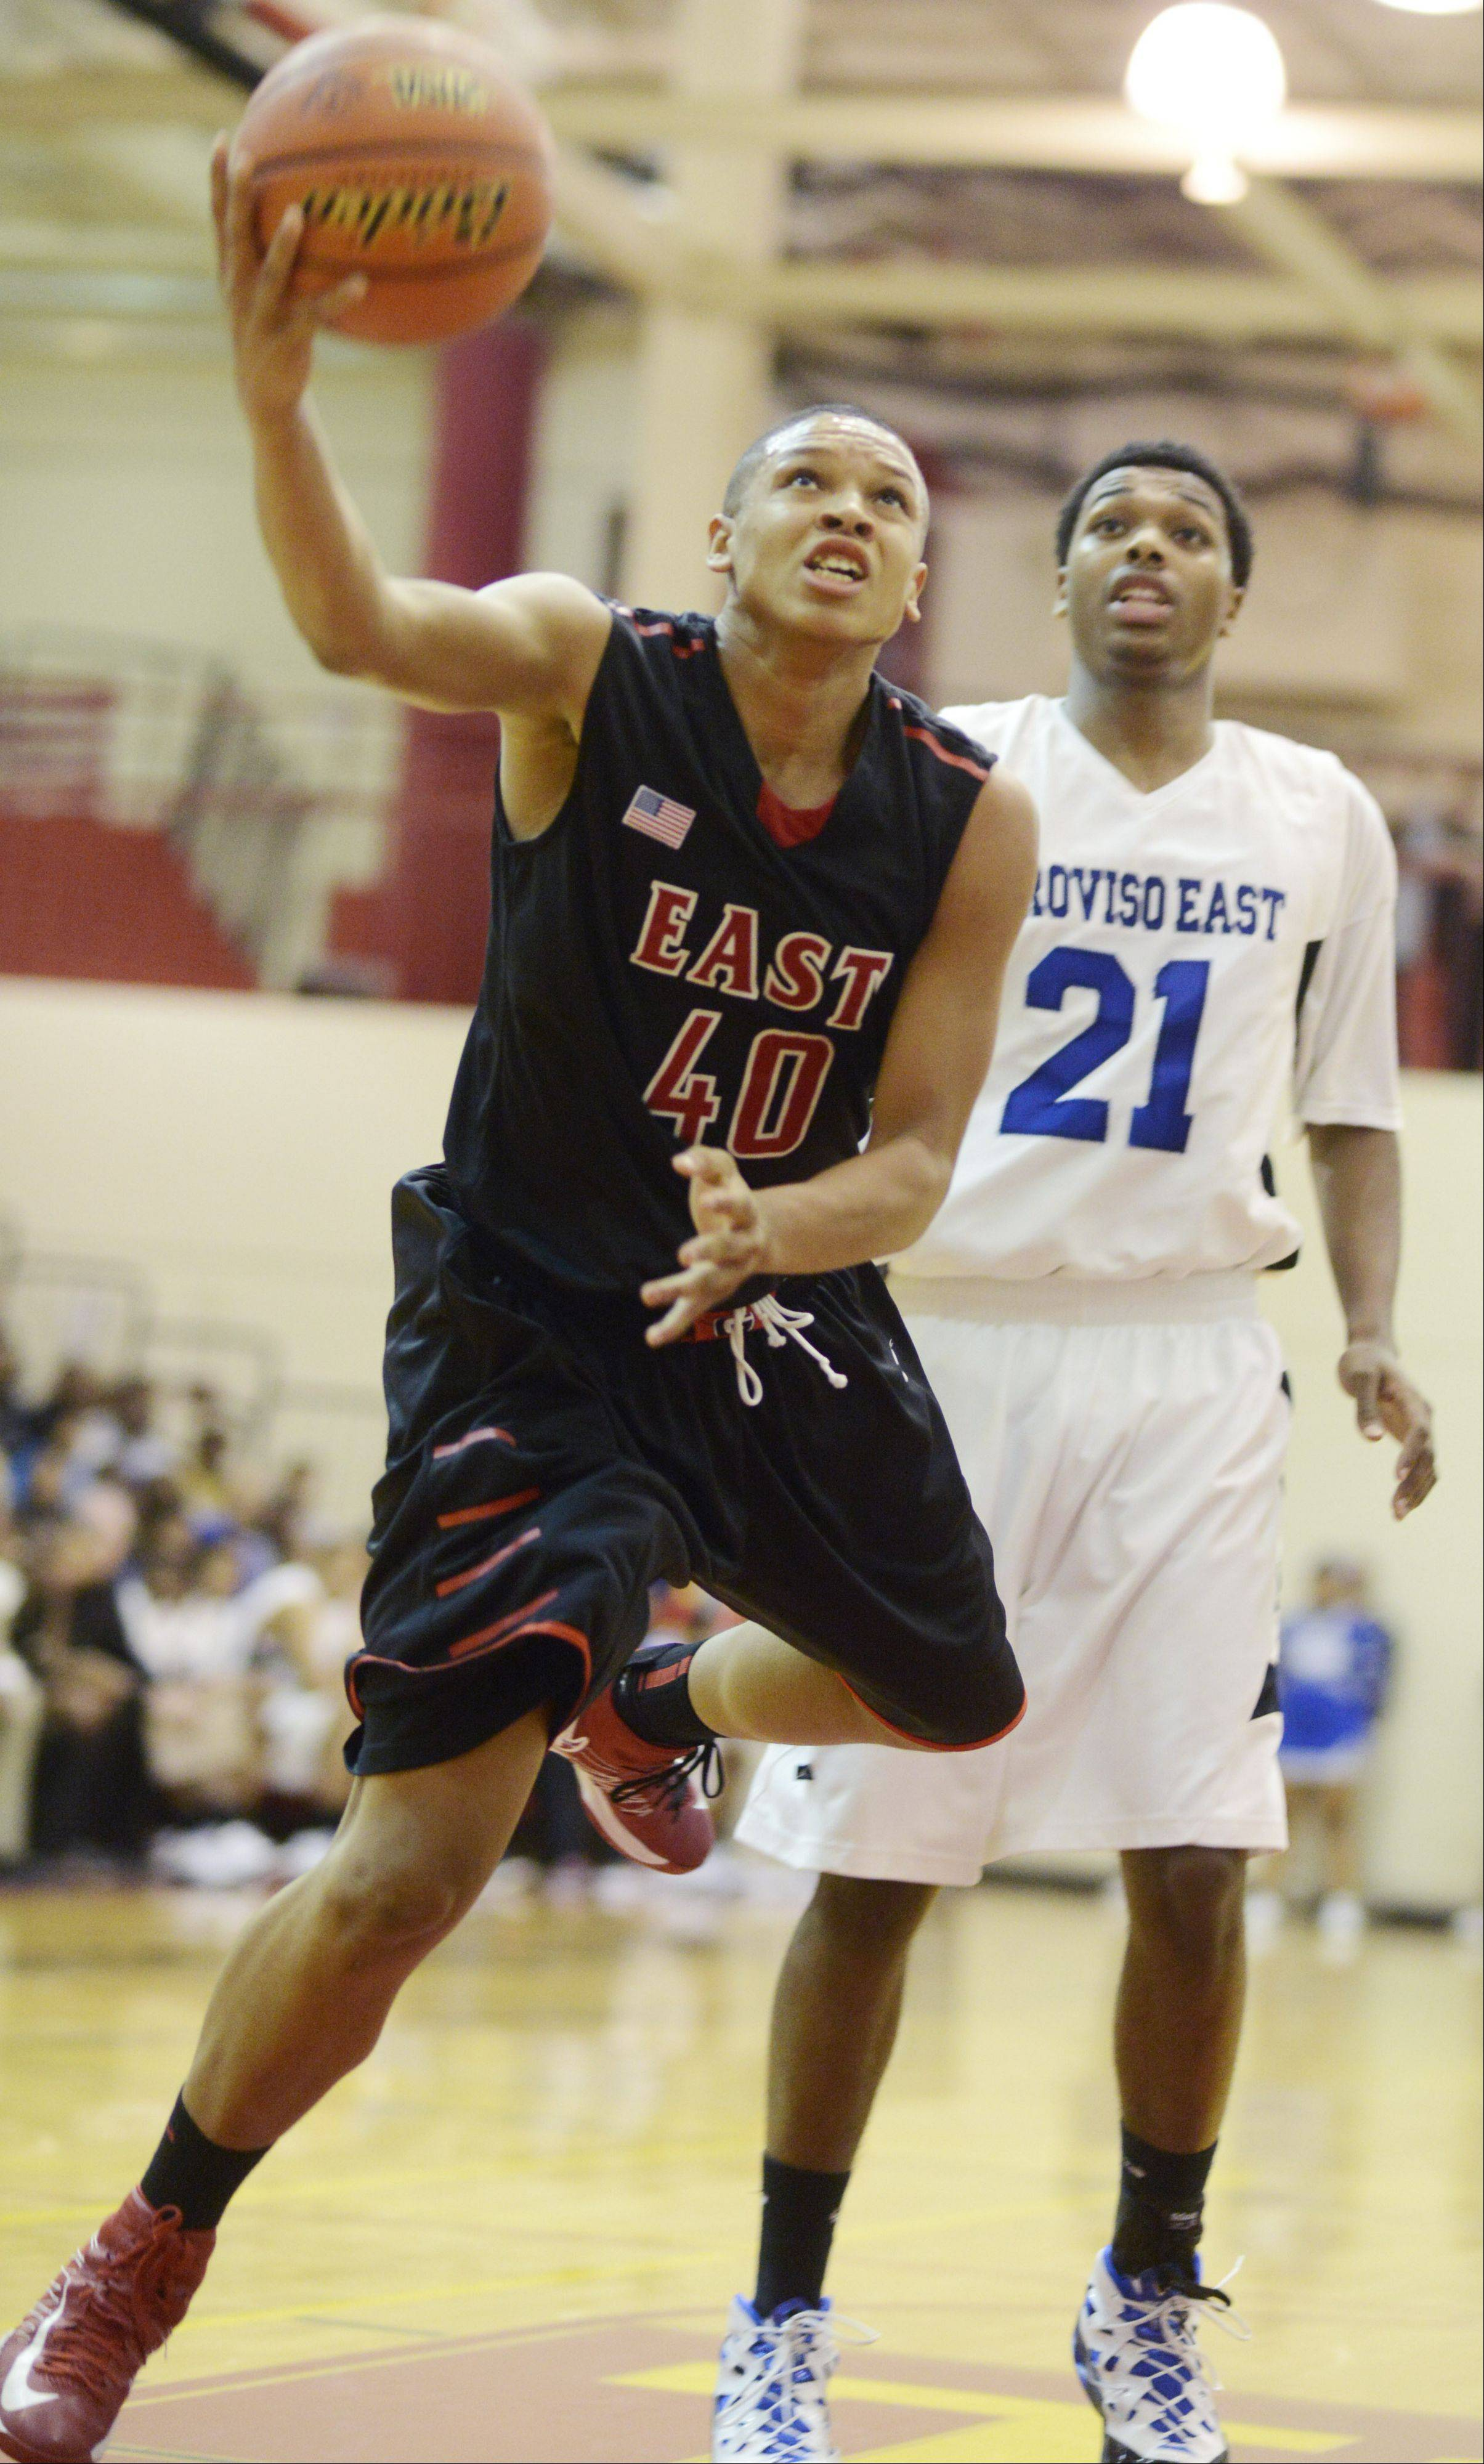 DVC frees Glenbard East, West Aurora to leave early